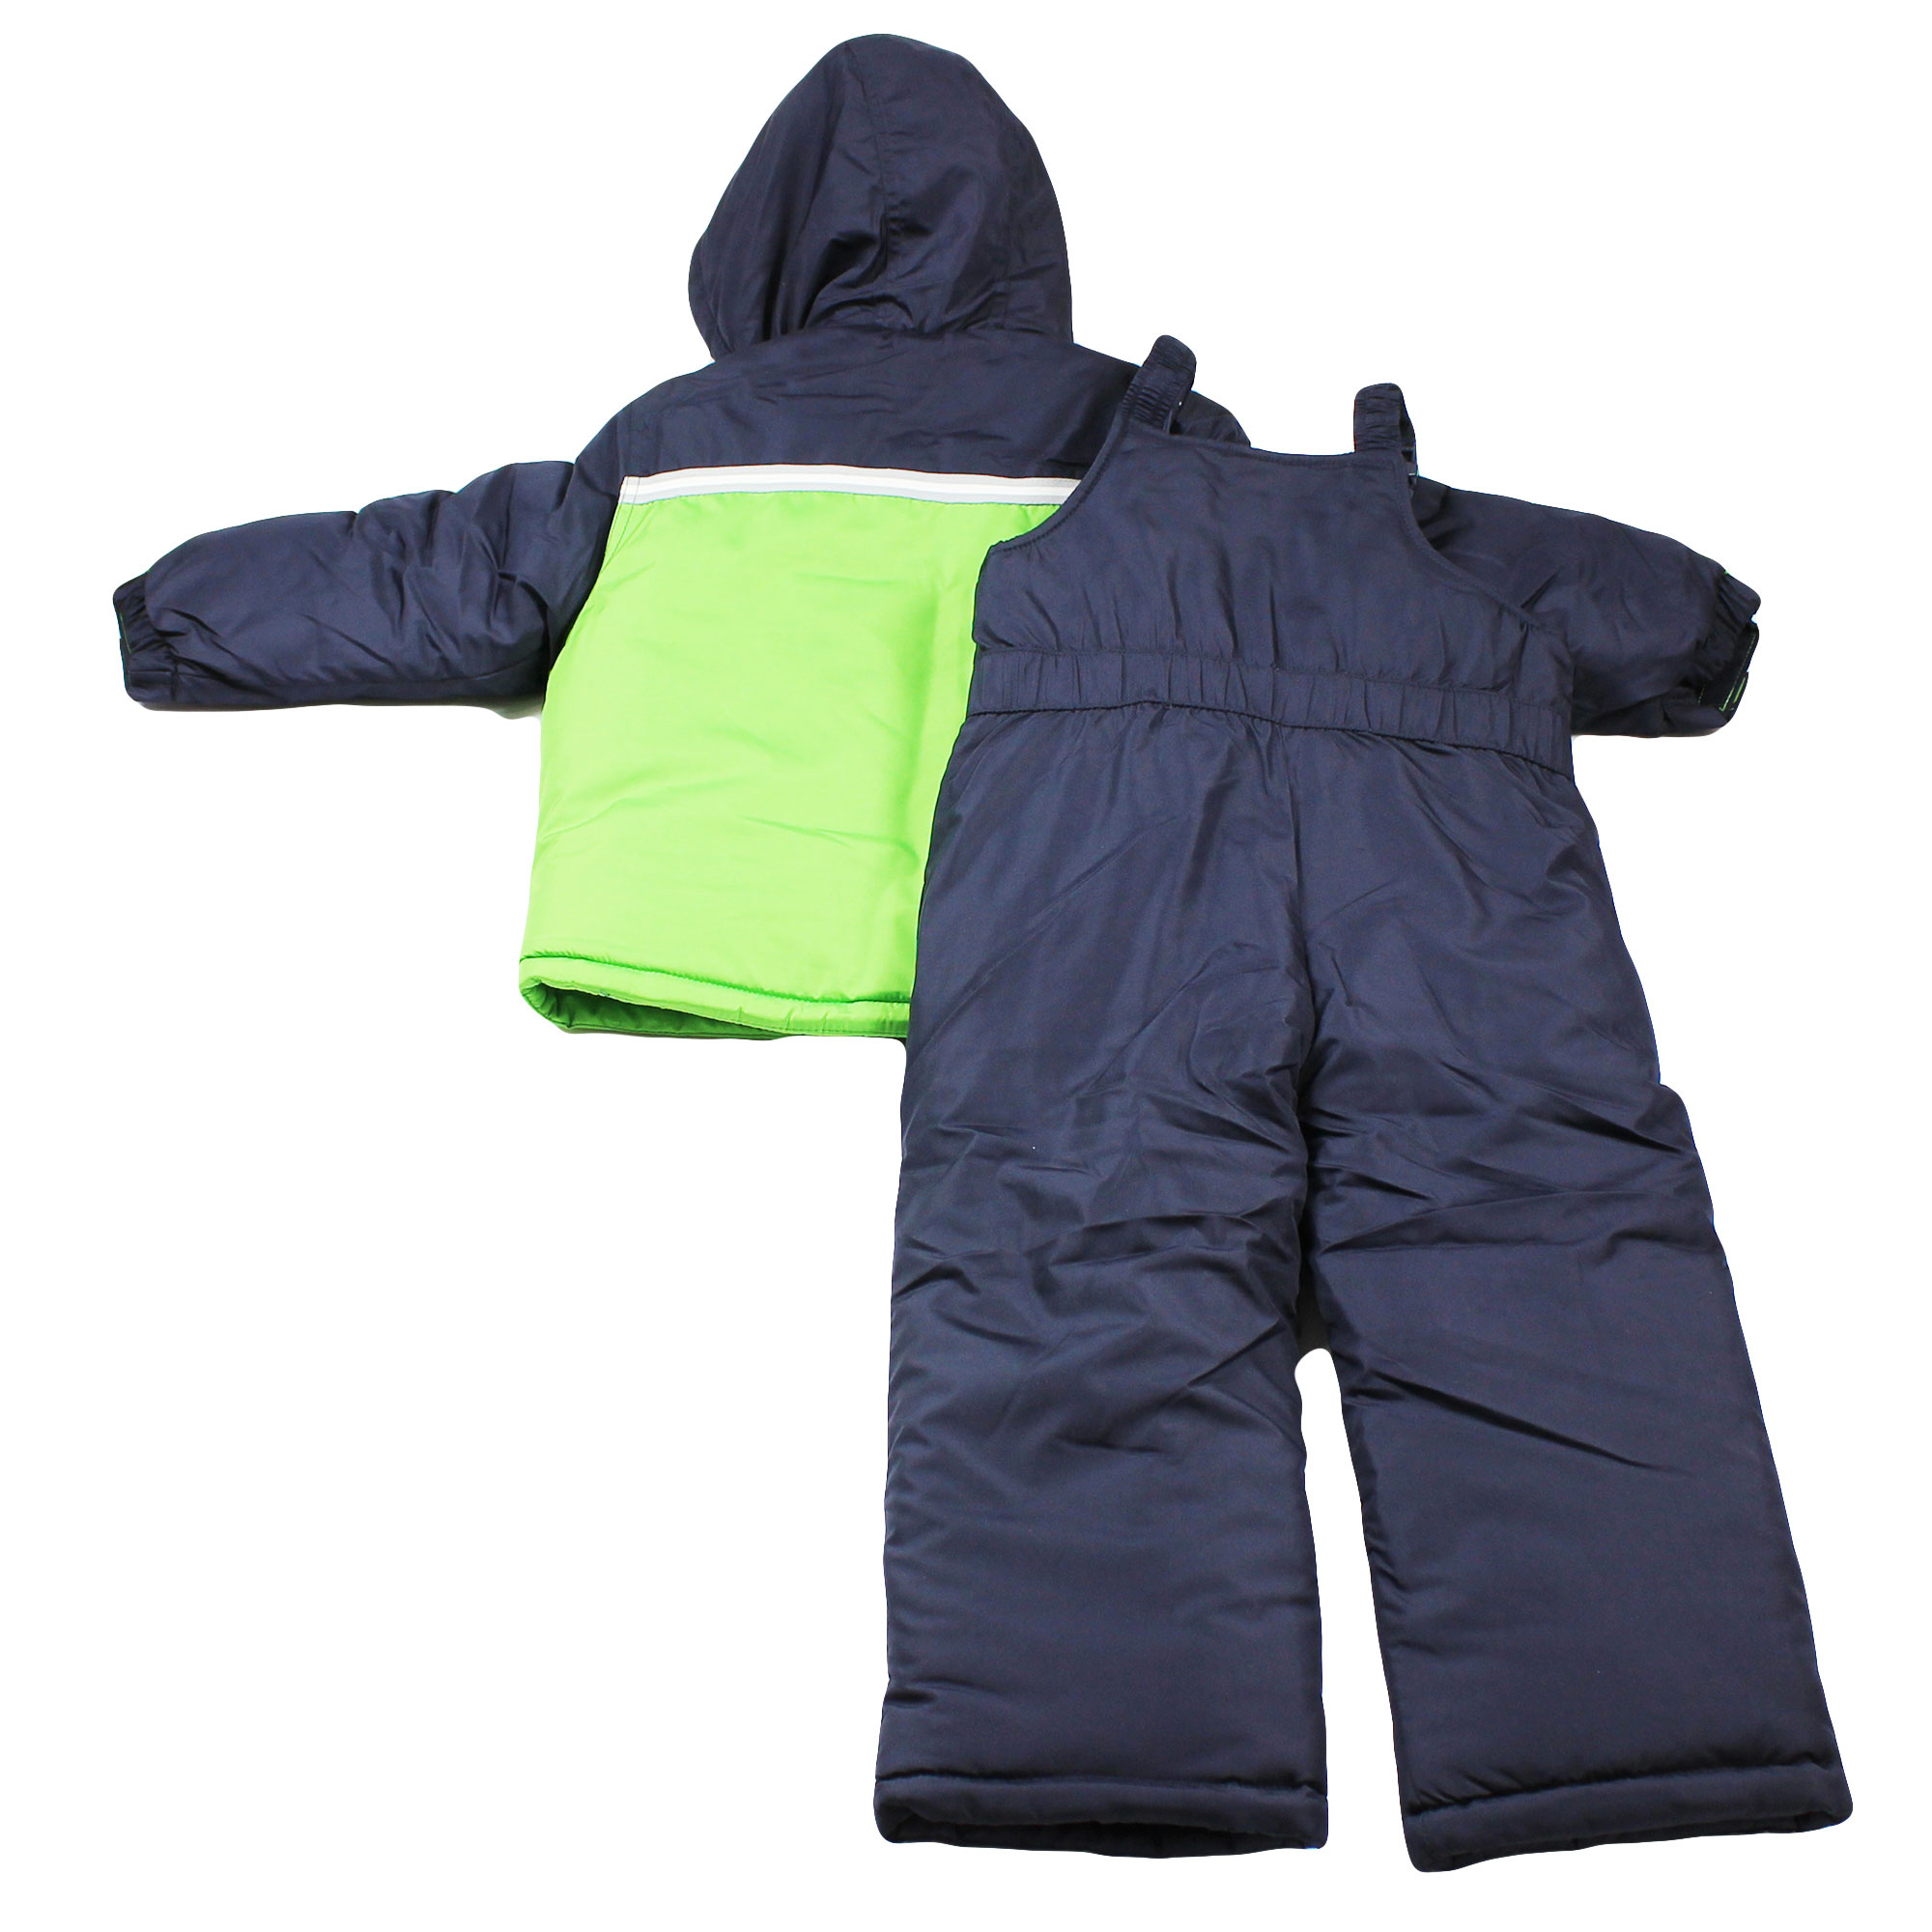 026de40e8 London Fog Boys Heavy Winter Jacket Snow Bib Overall Pants Green Size 7 -  Walmart.com